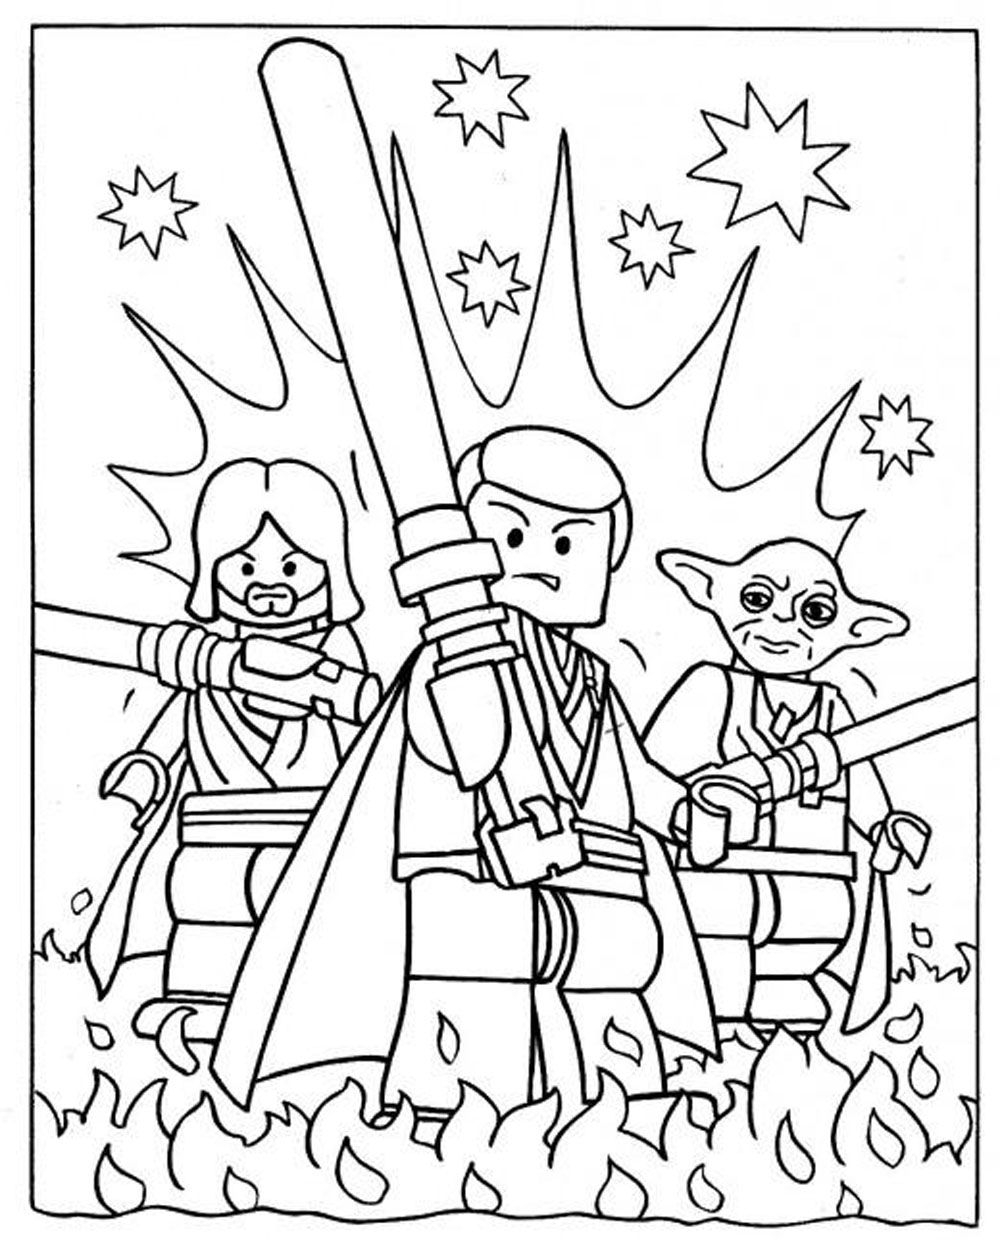 Lego Coloring Pages Star Wars Cooloring Book Free Star Wars Coloring Pagesstonishing Outstanding